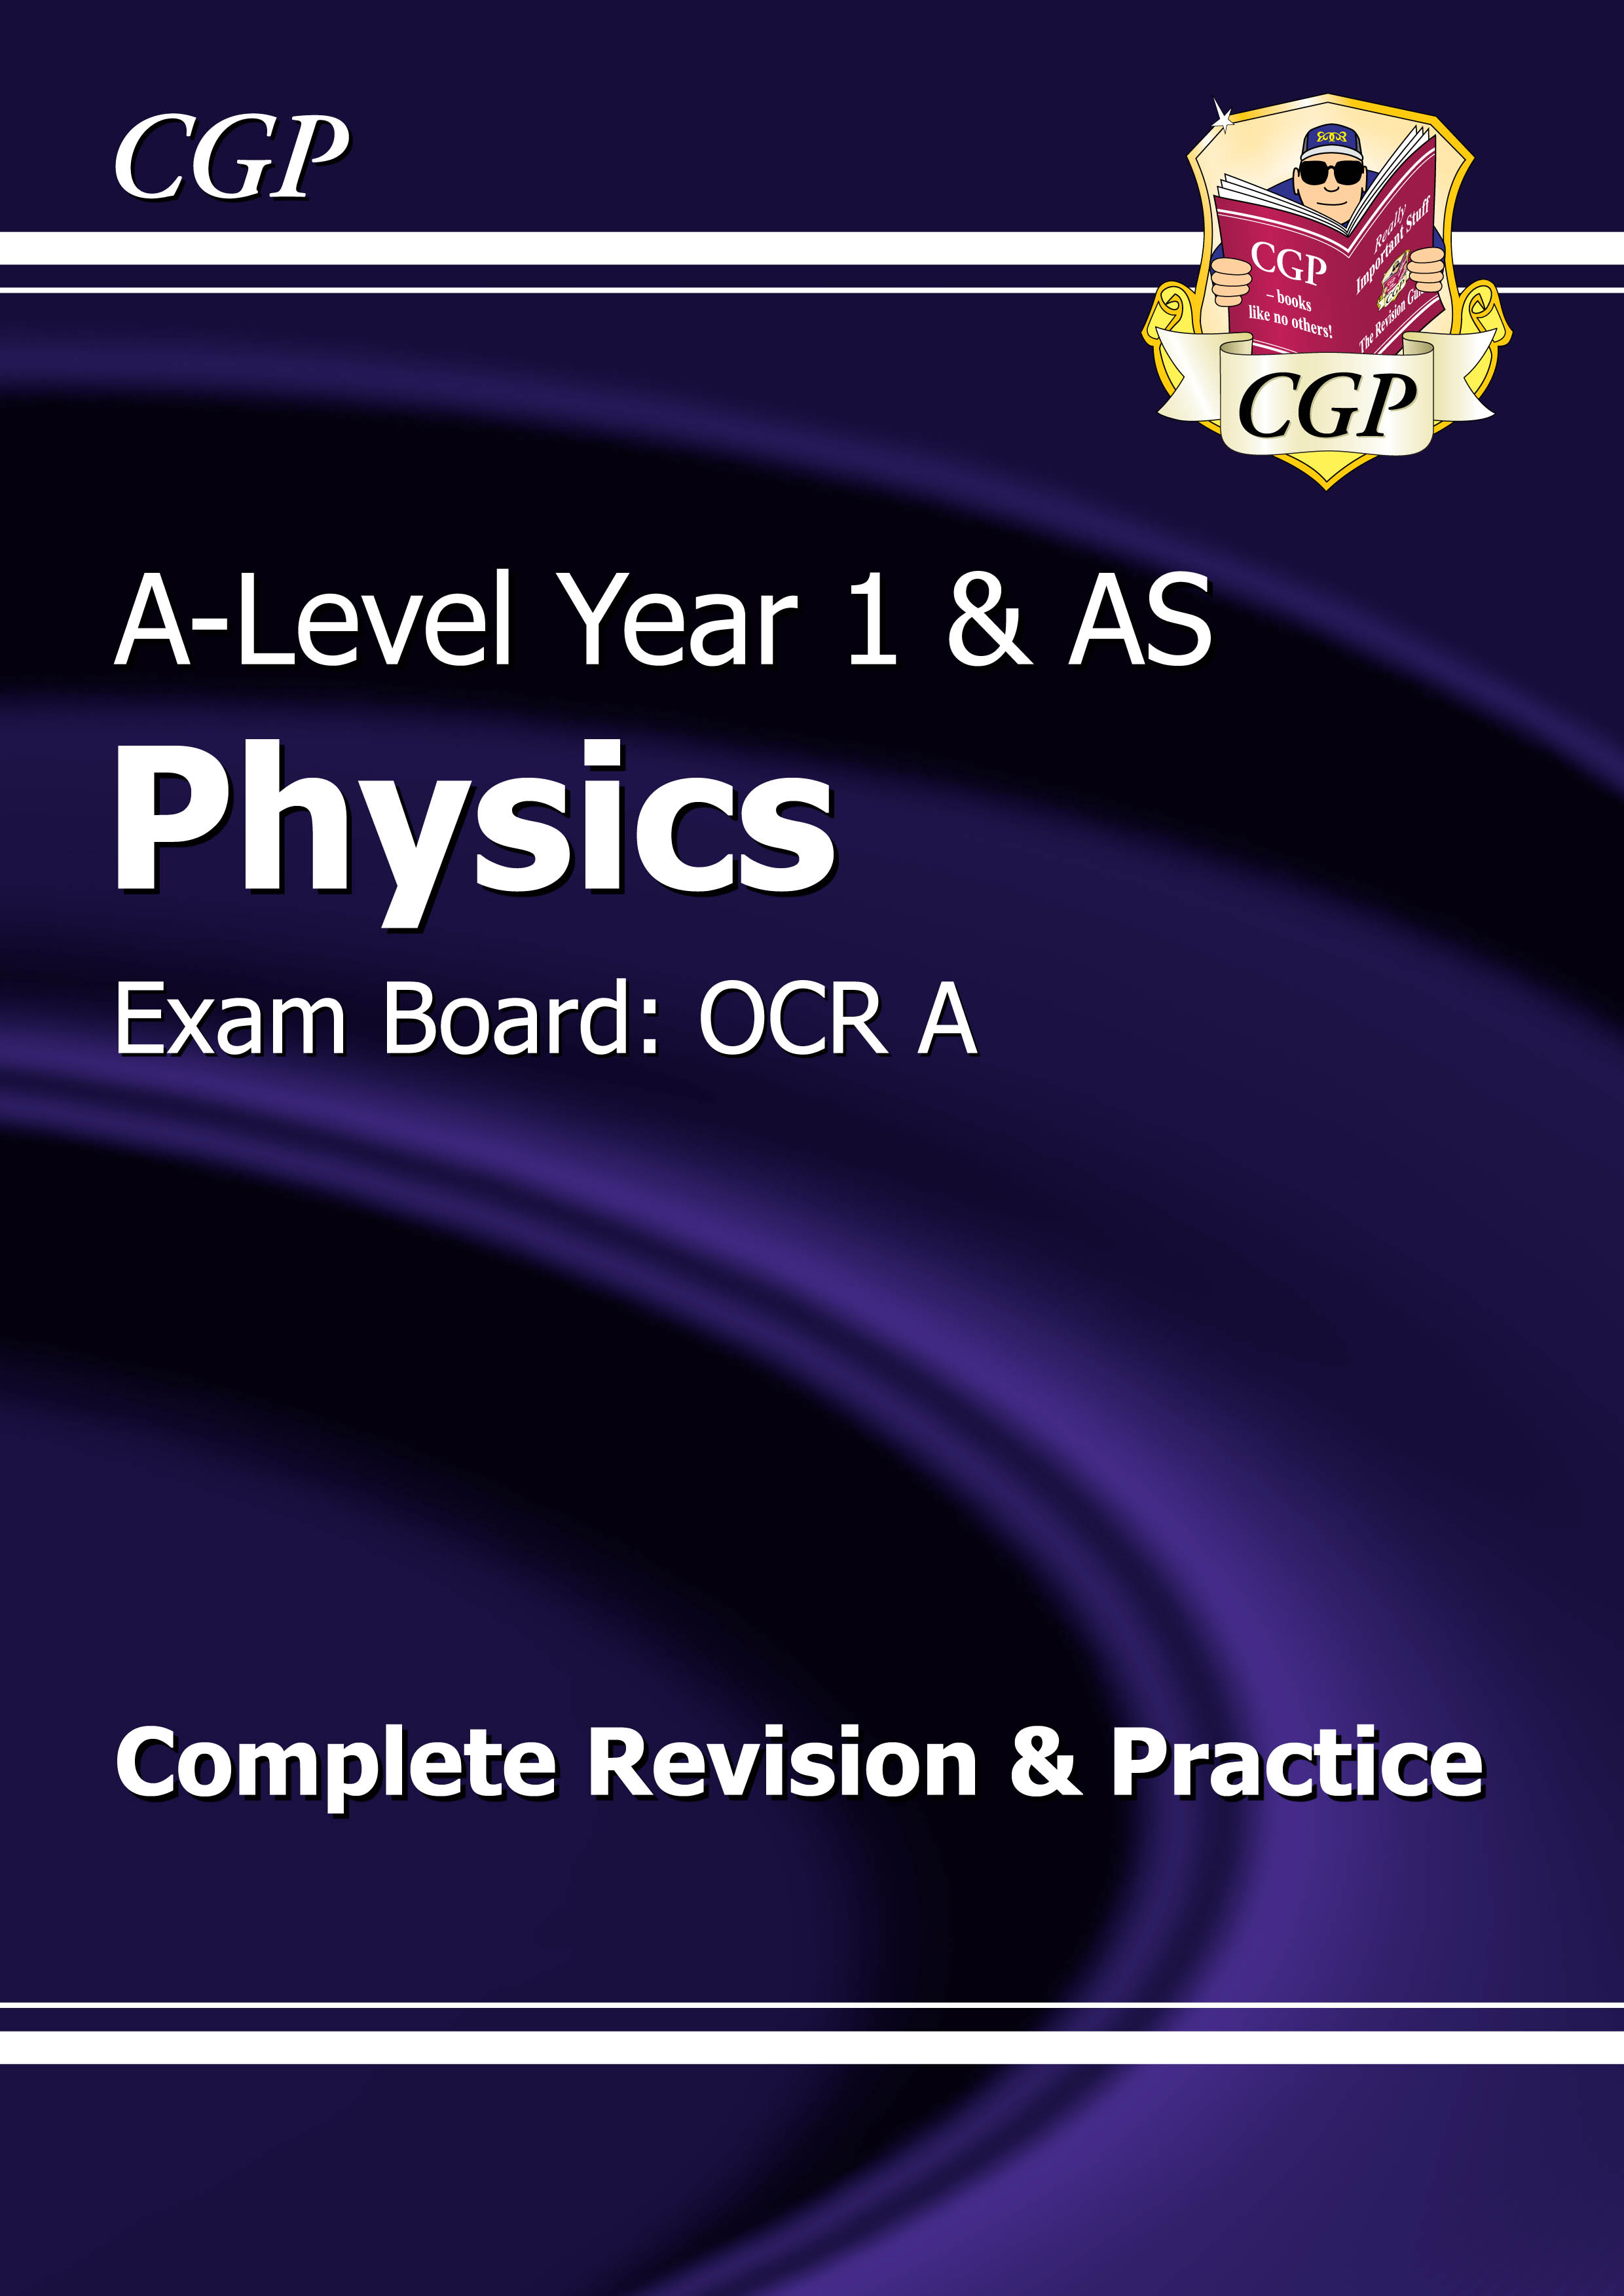 PRAR53DK - A-Level Physics: OCR A Year 1 & AS Complete Revision & Practice